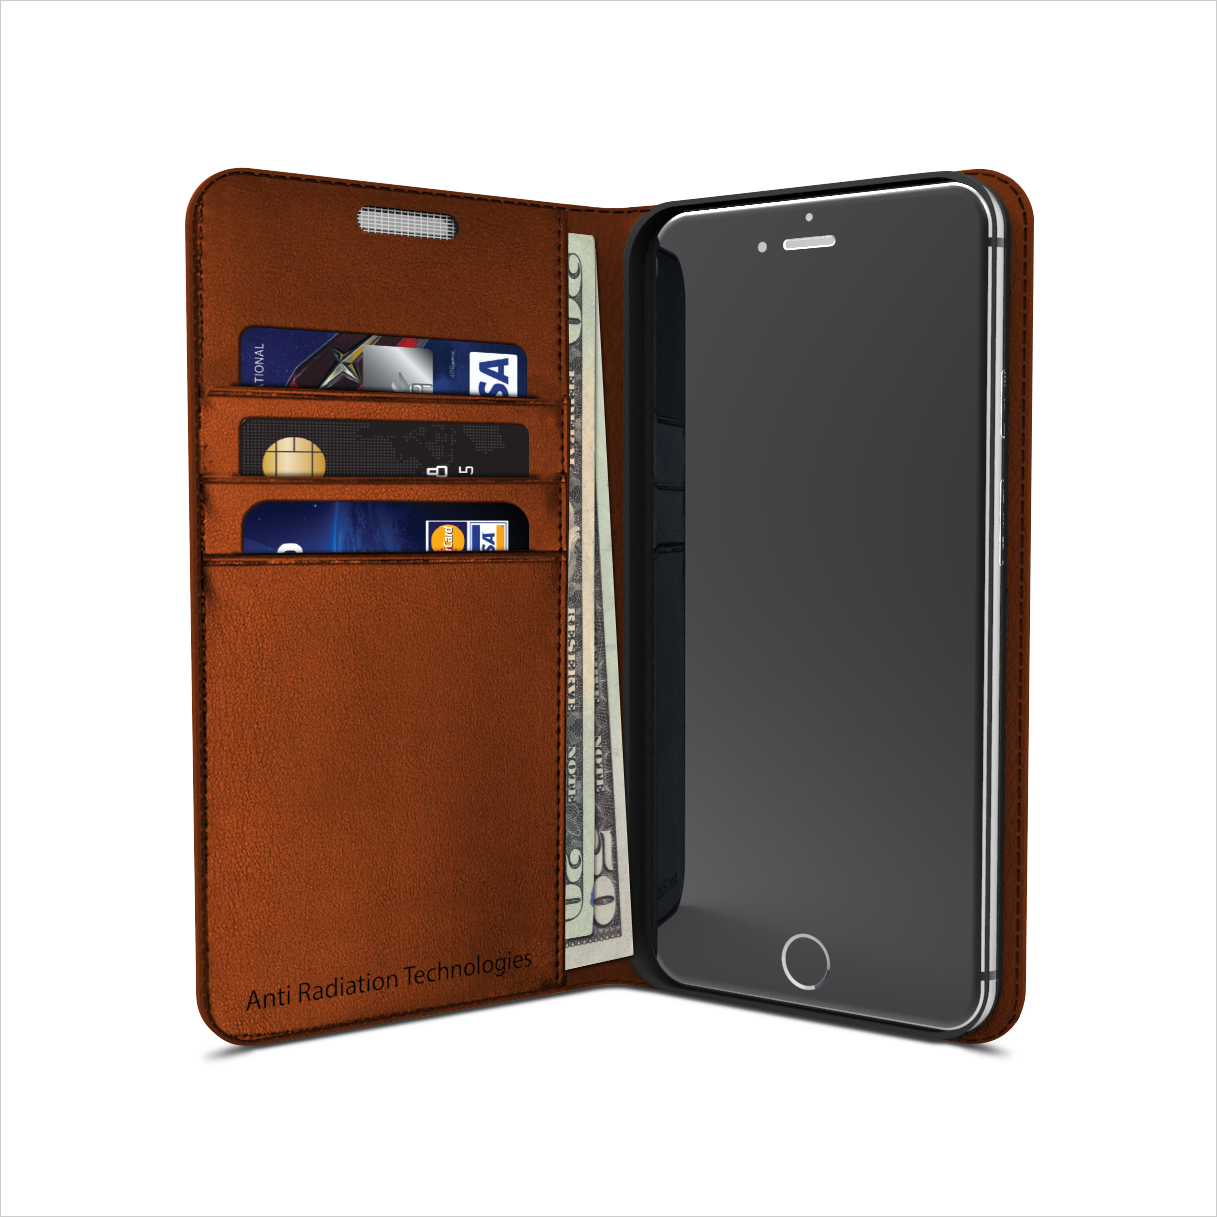 vest Anti-Radiation Wallet Case for iPhone 6 / 6s 00095